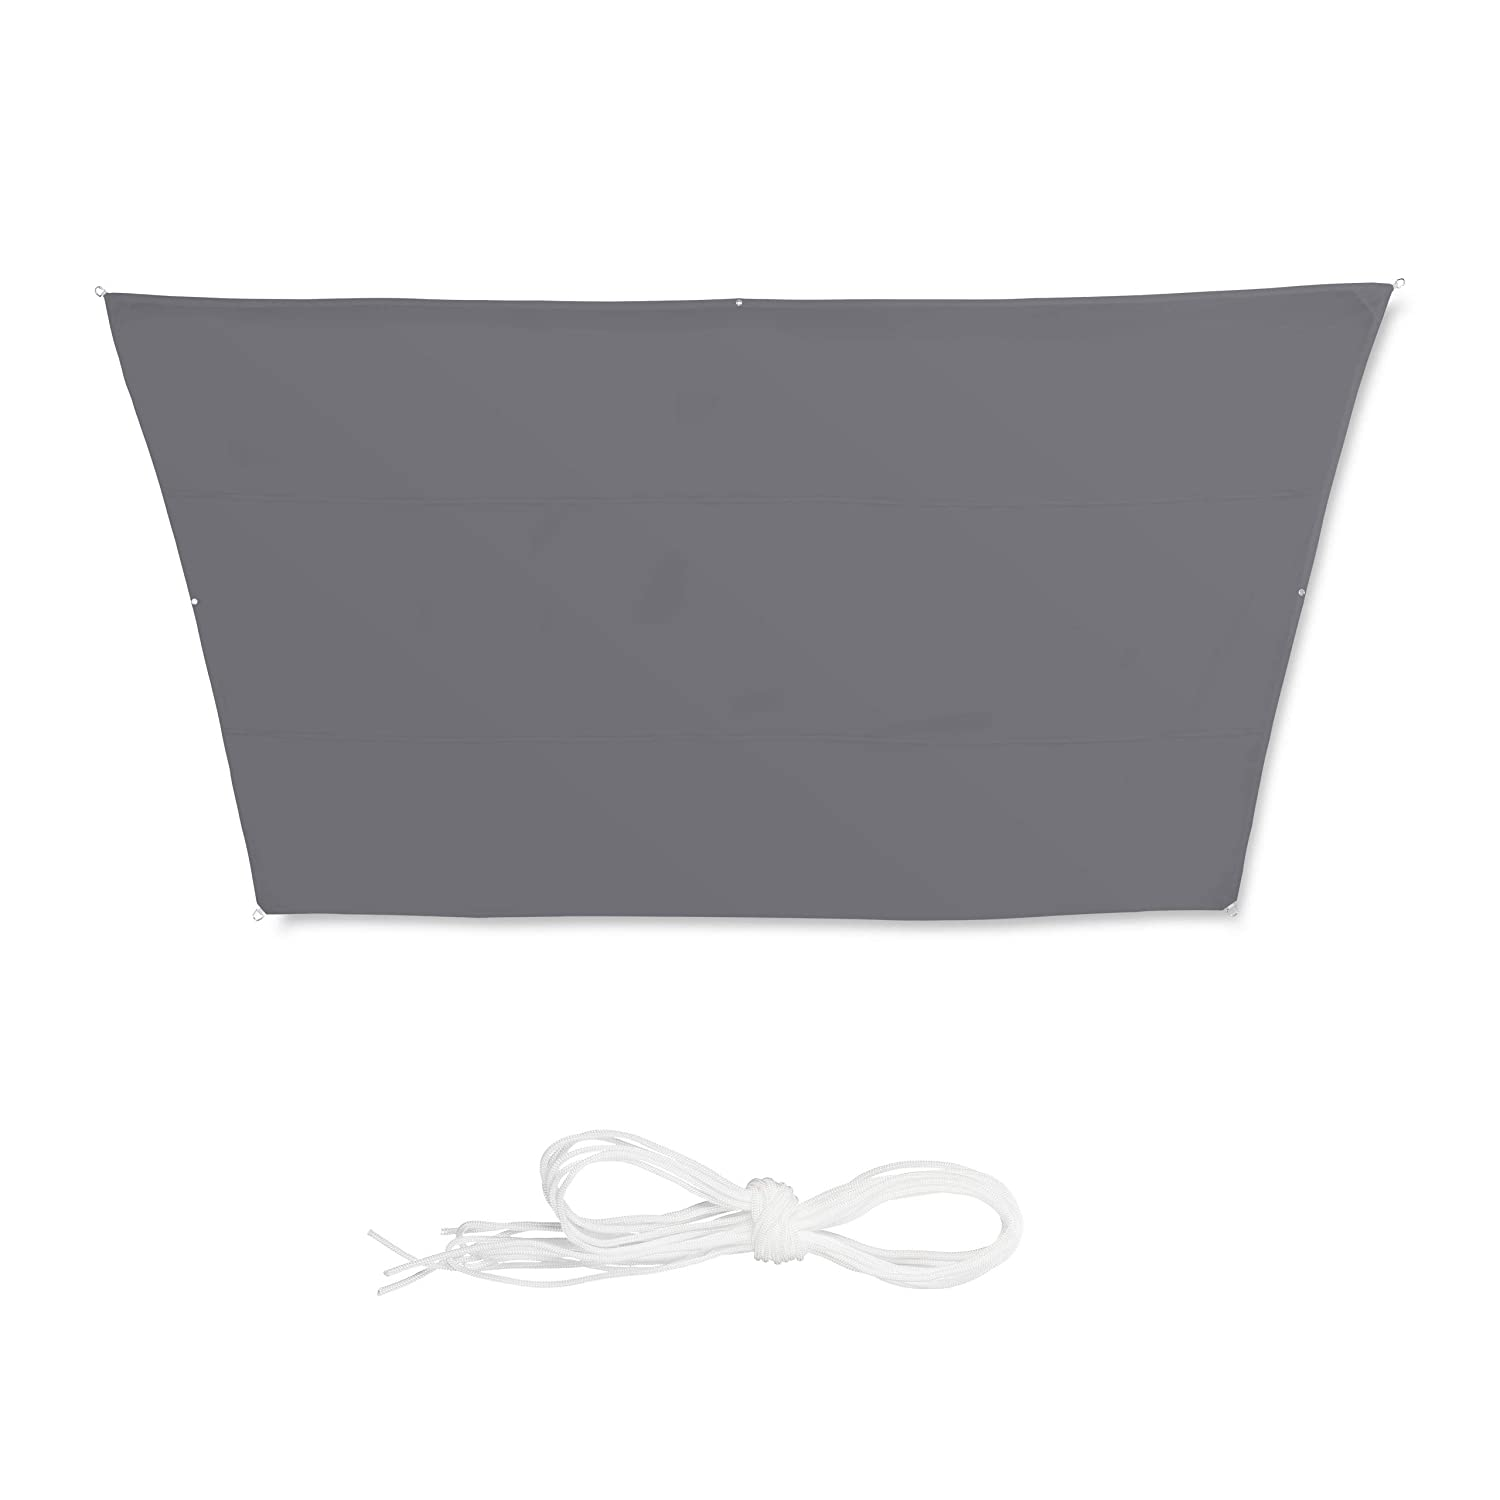 Balcony Awning 3x4x2x2m Trapeze UV-Protection with Tethers Water-Repellent 3 x 4 x 2 x 2 m Grey Relaxdays Shade Sail